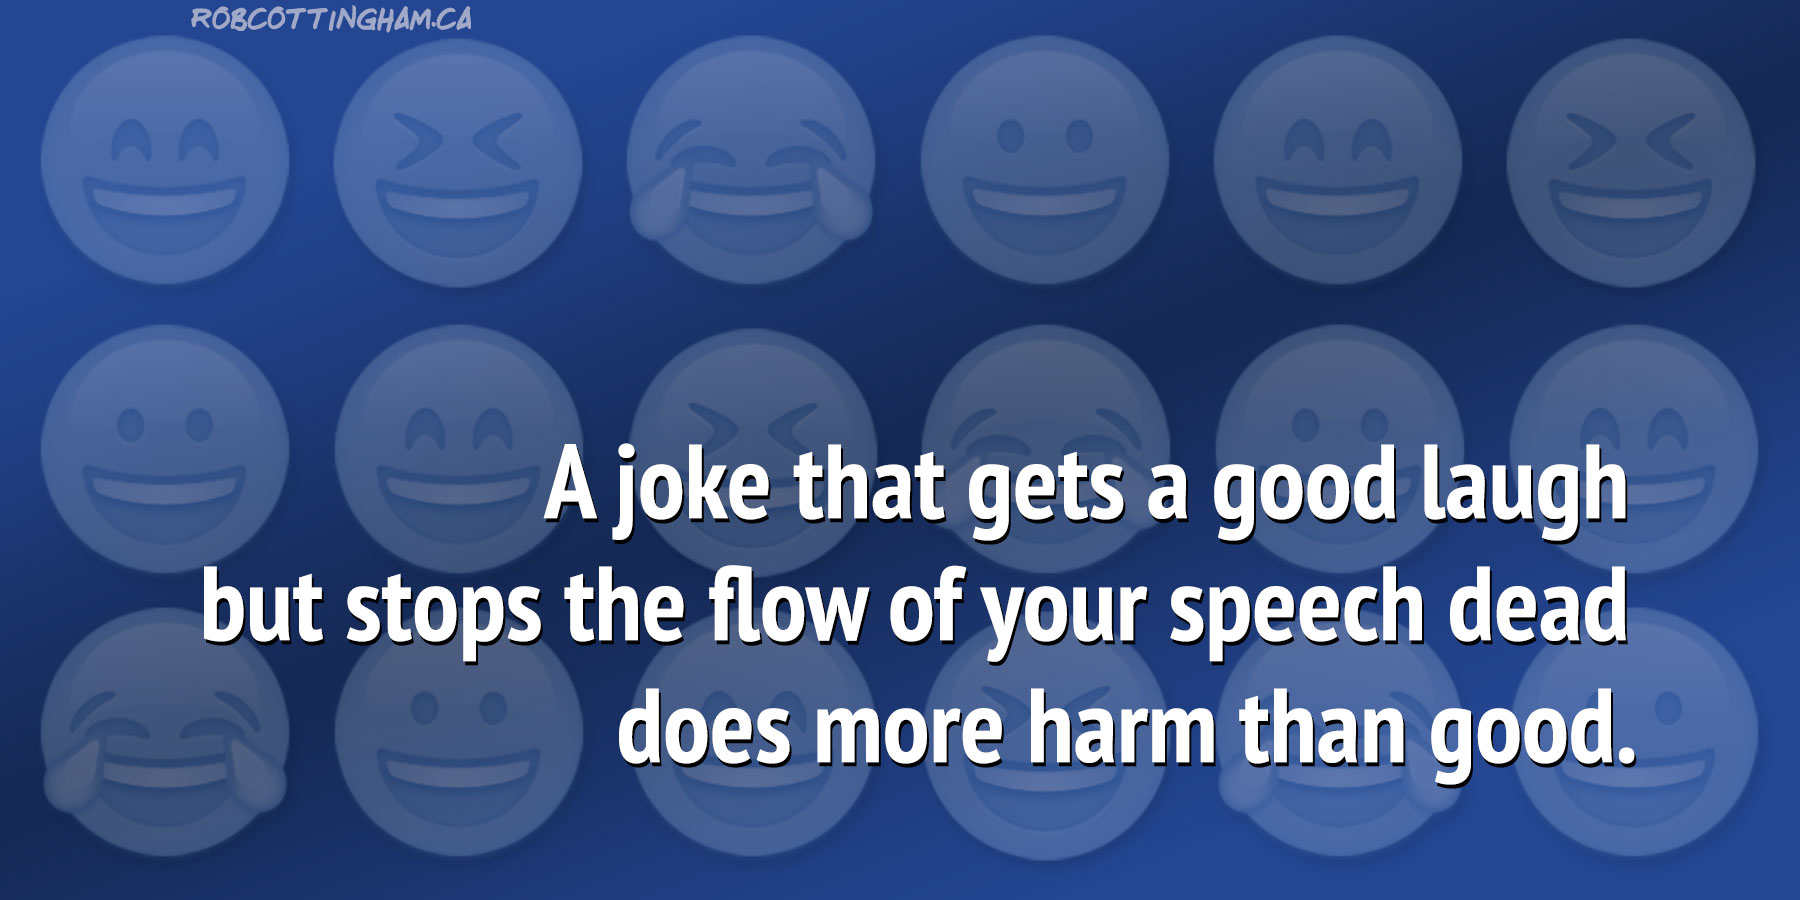 How to use humor in a speech (without getting burned)